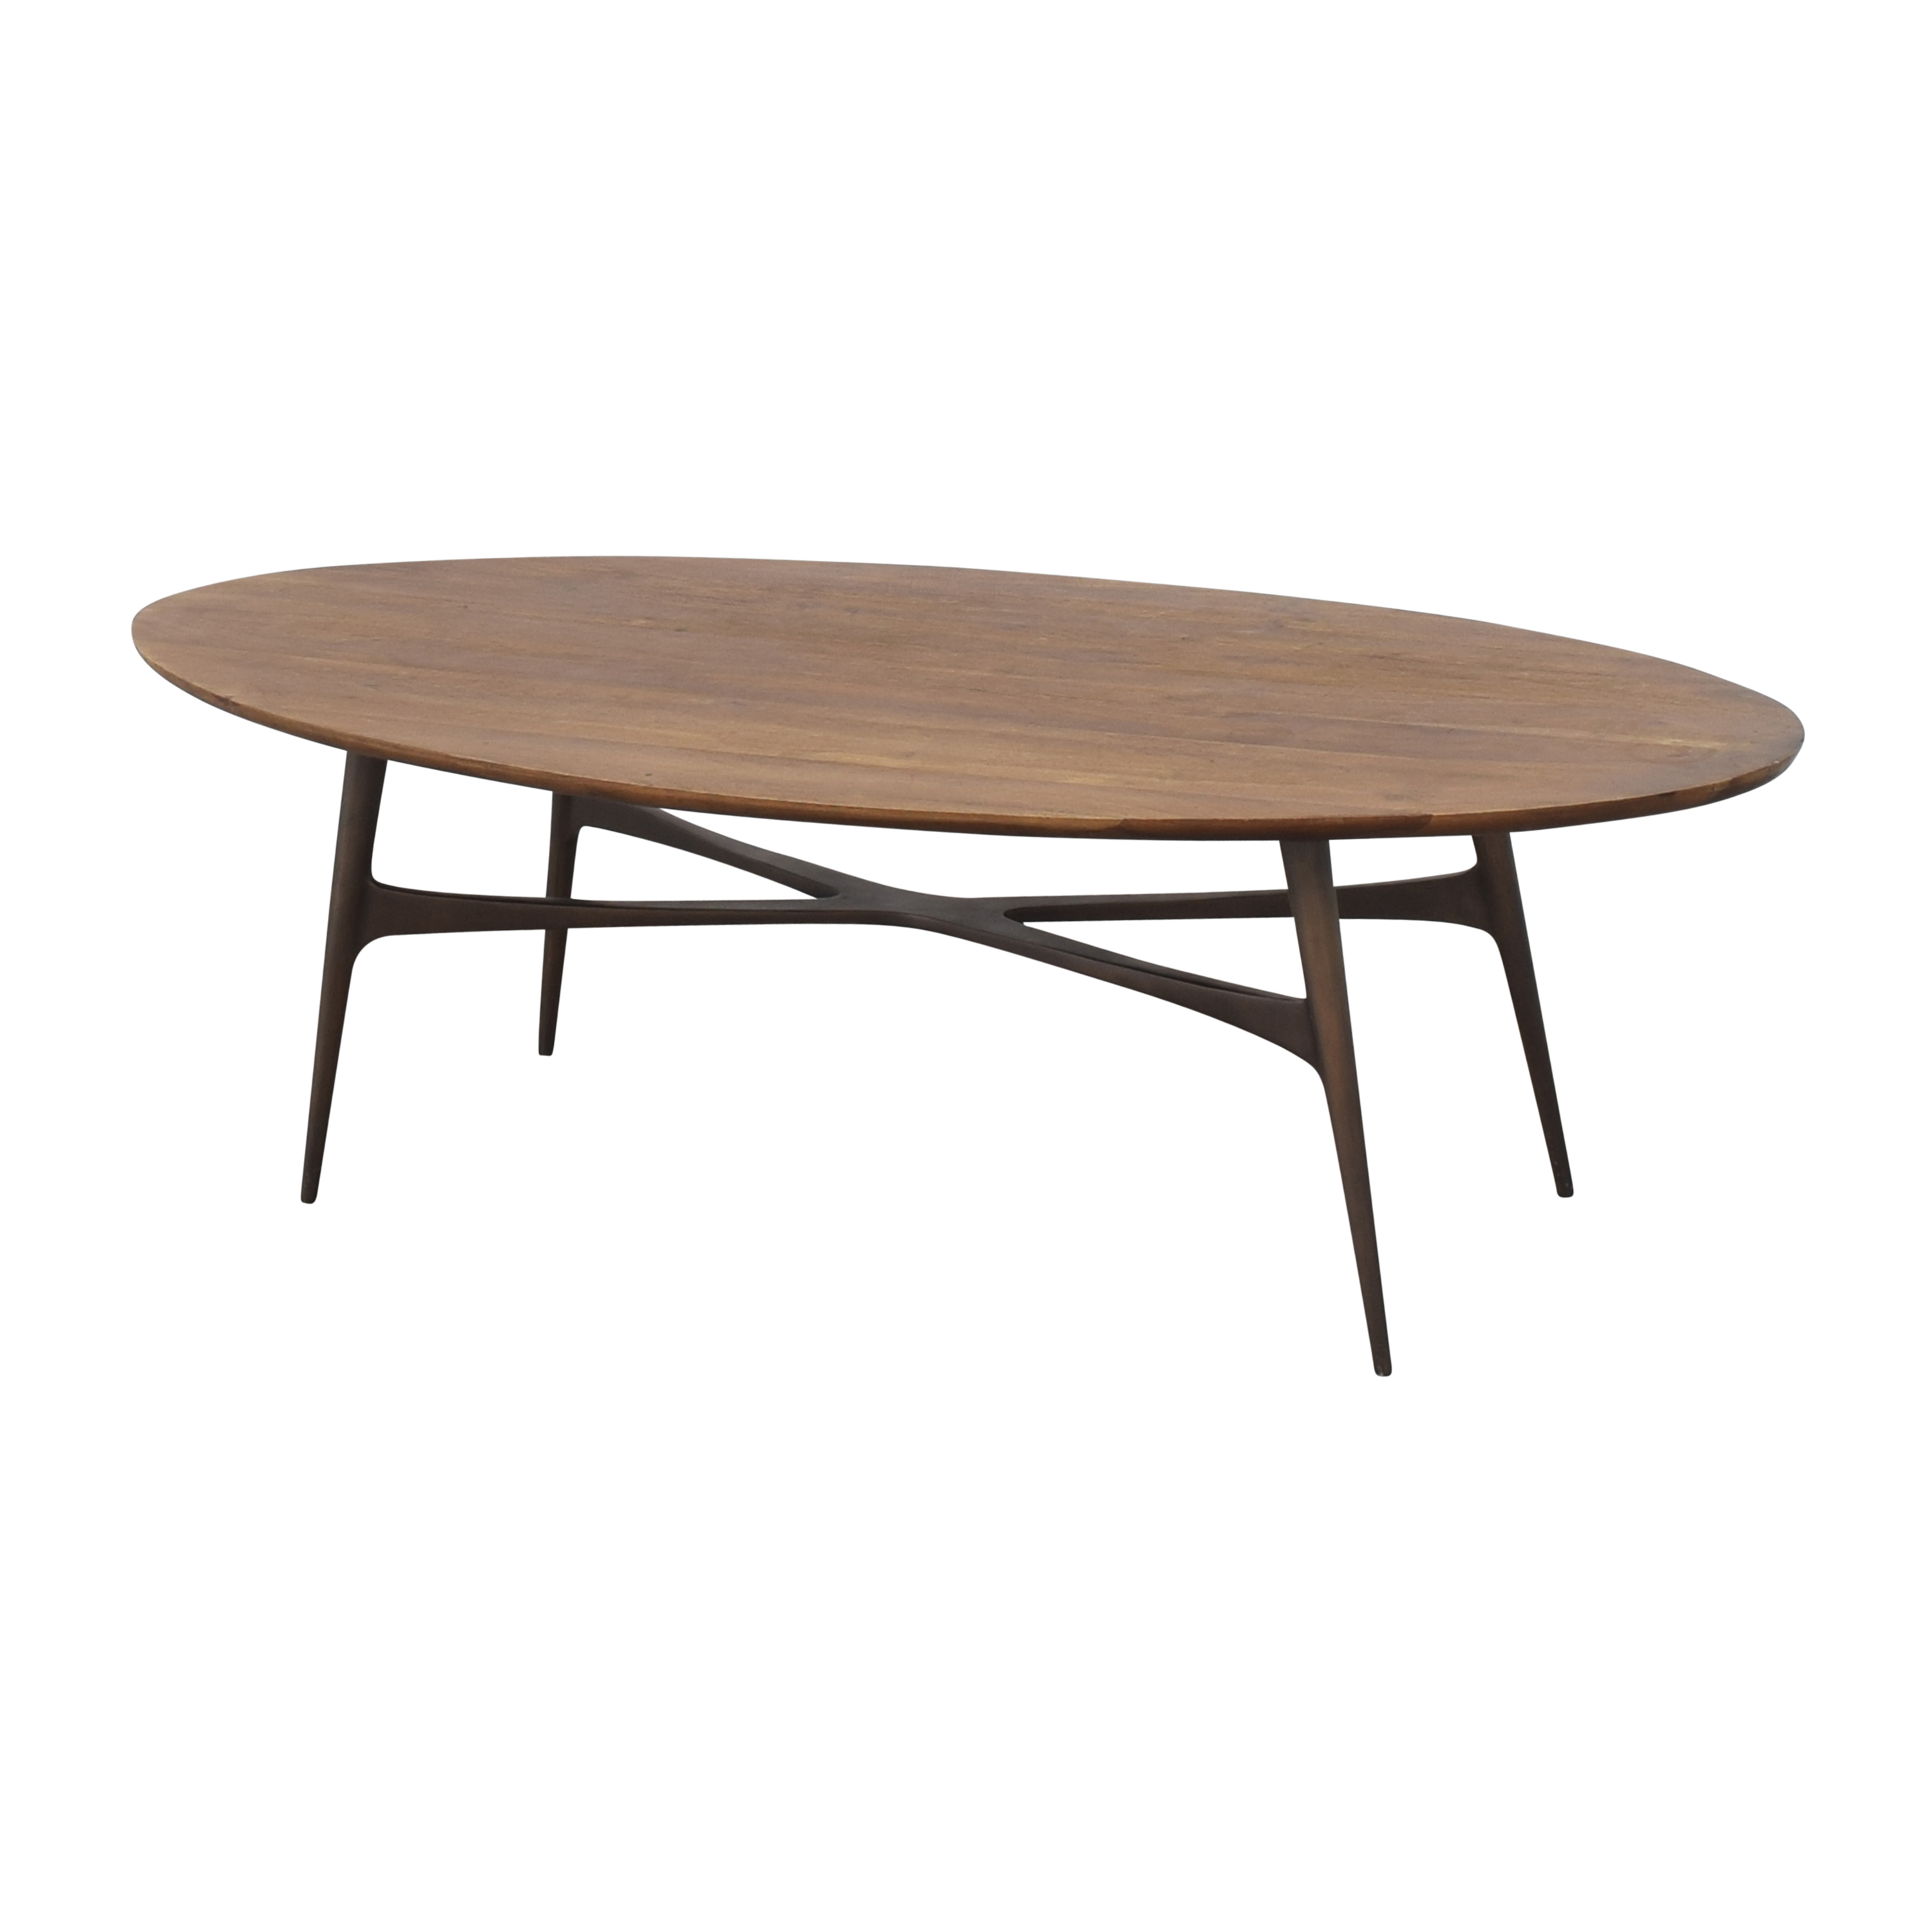 shop Crate & Barrel Bel Air Oval Coffee Table Crate & Barrel Coffee Tables